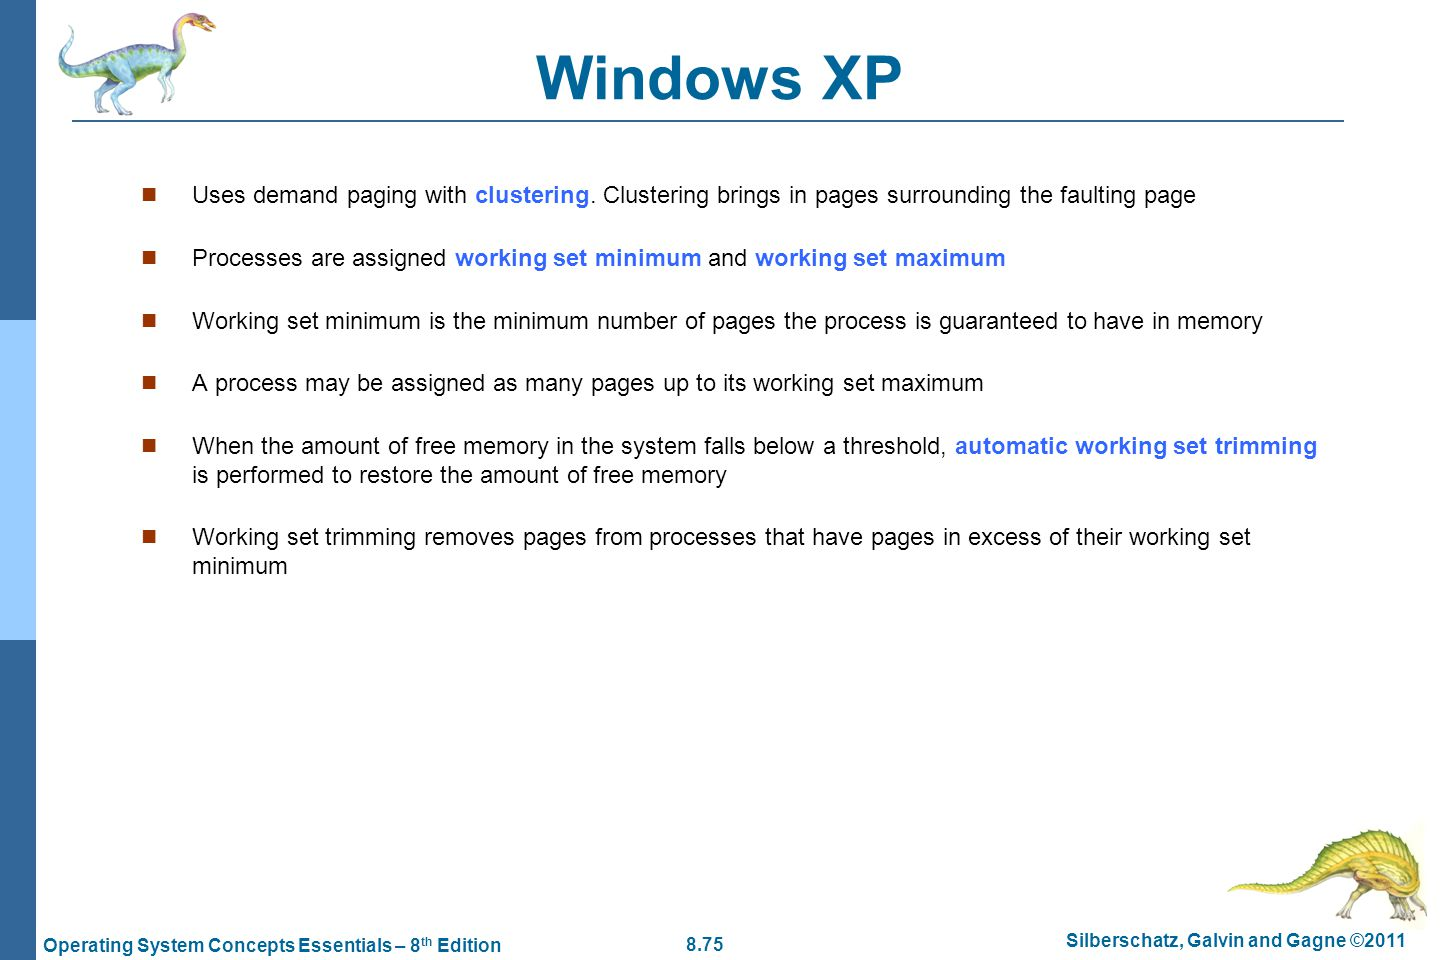 8.75 Silberschatz, Galvin and Gagne ©2011 Operating System Concepts Essentials – 8 th Edition Windows XP Uses demand paging with clustering. Clusterin